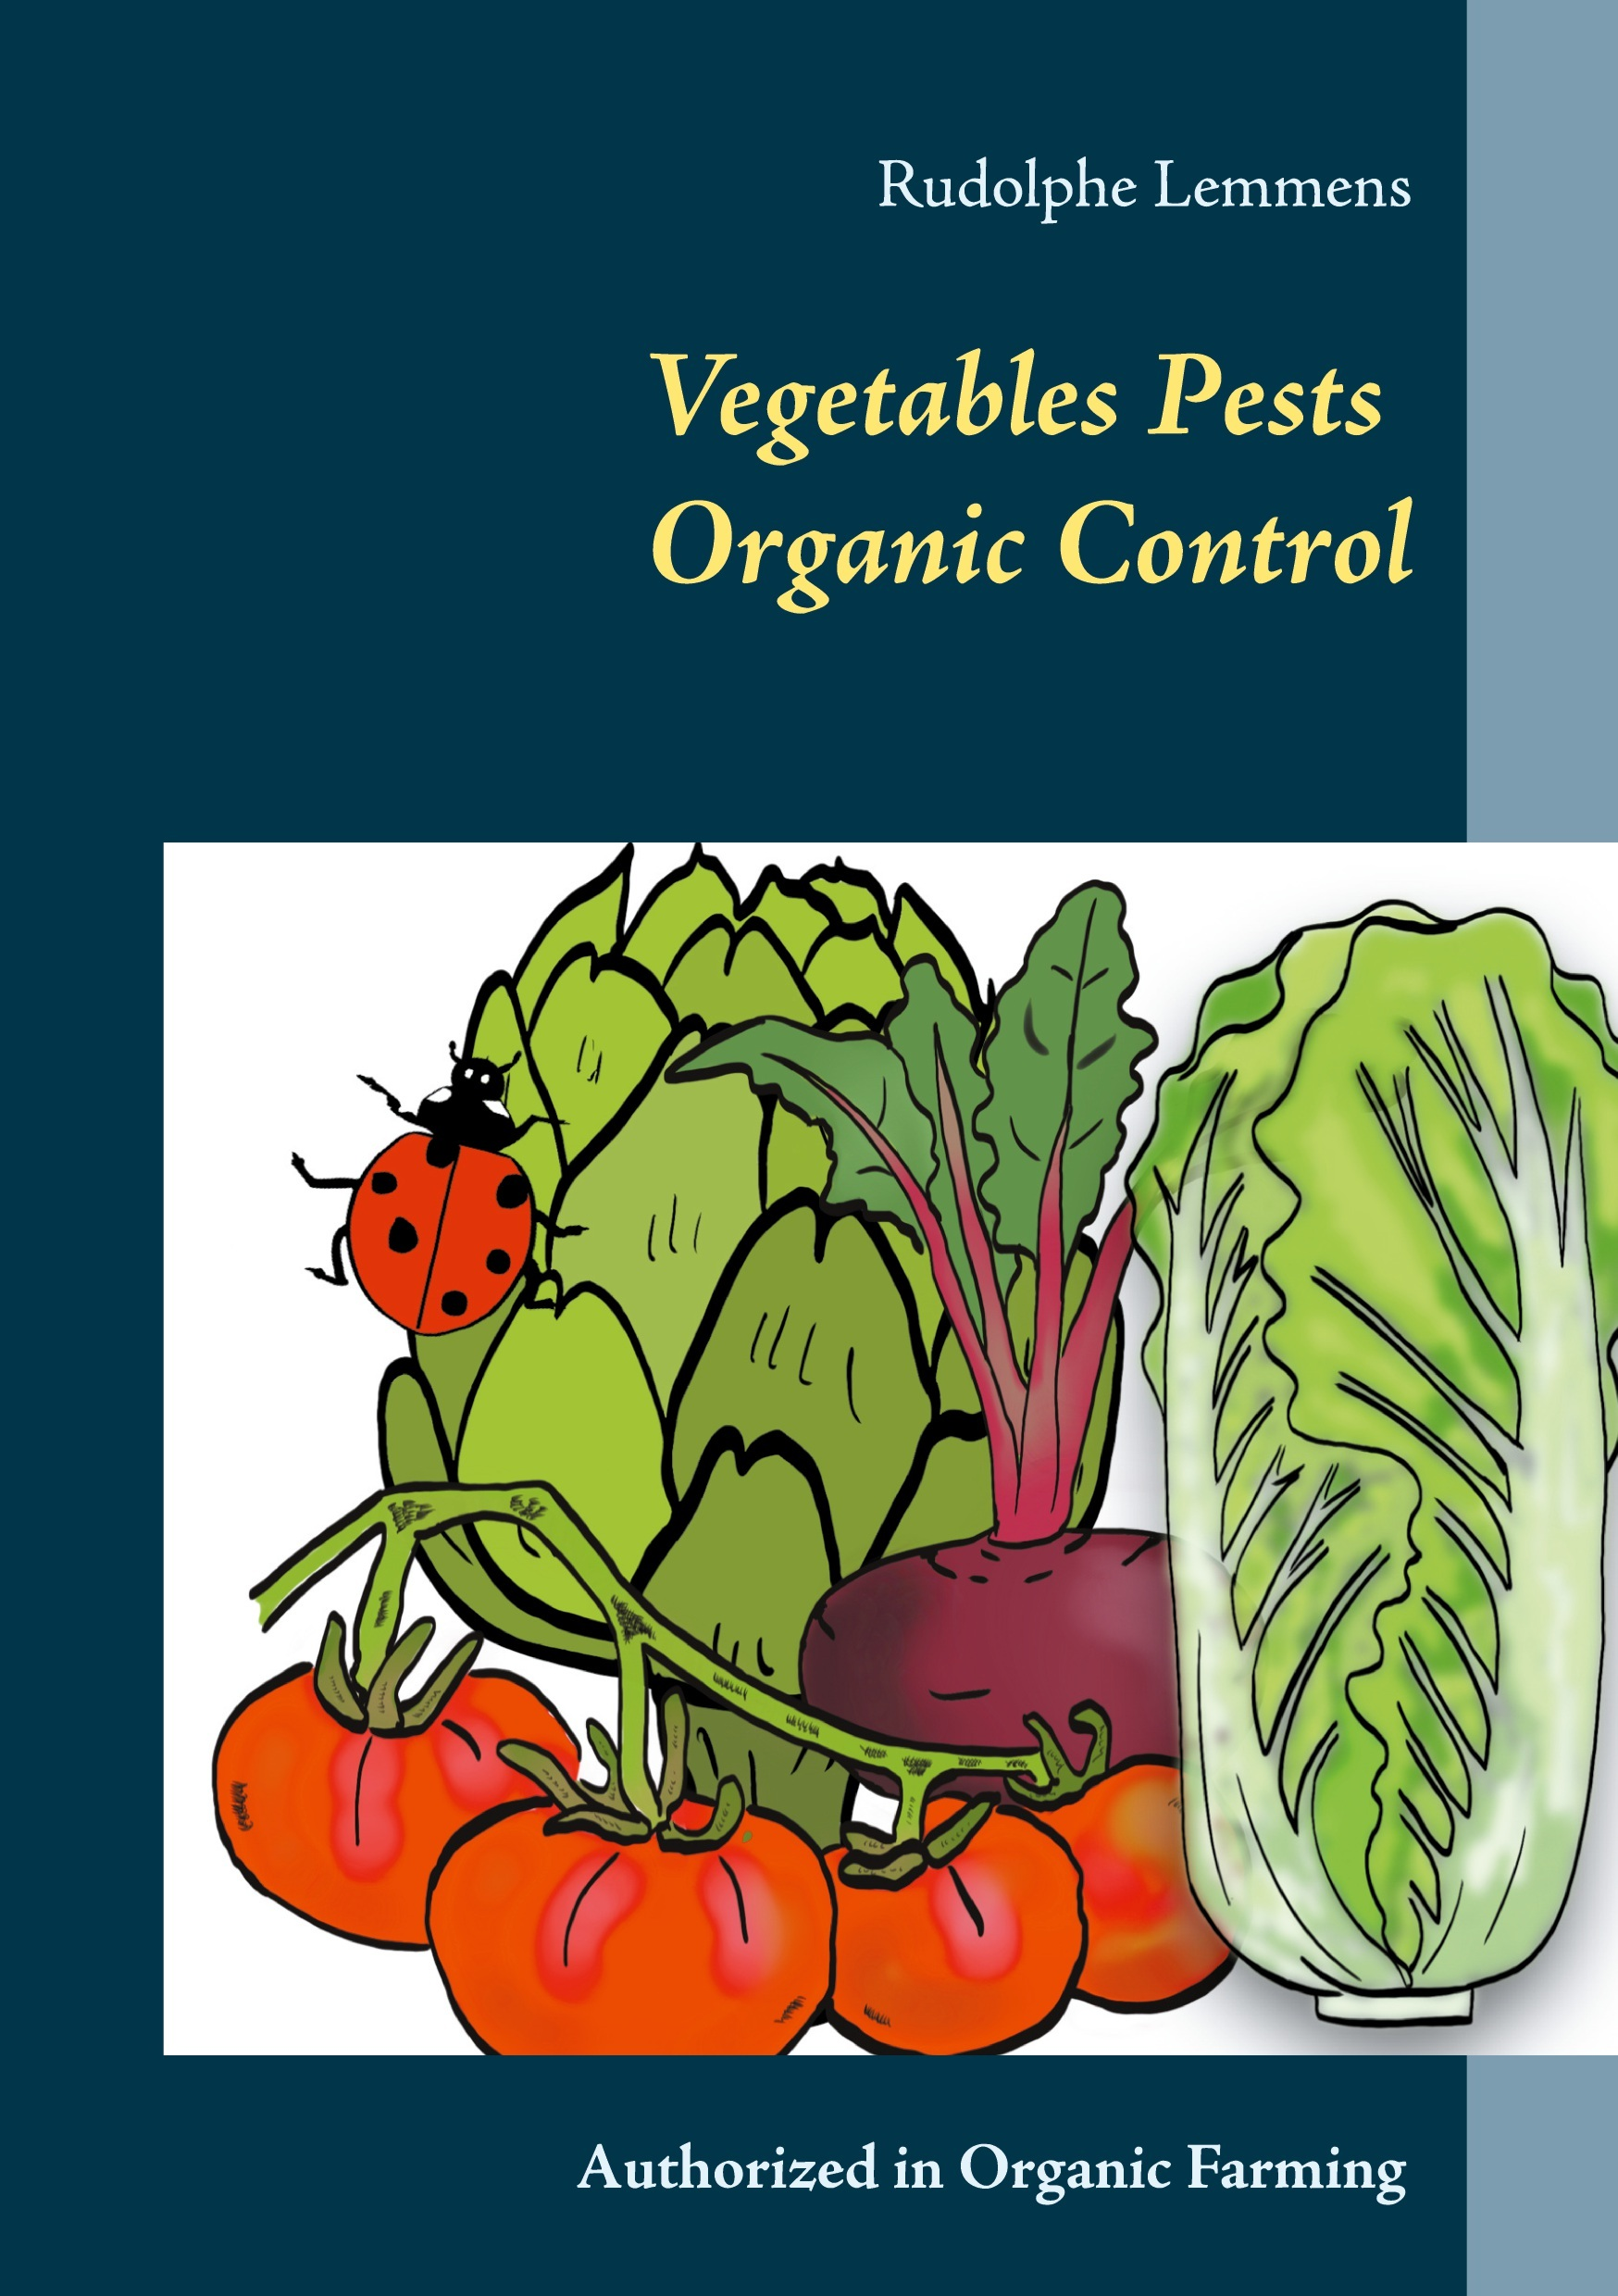 VEGETABLES PESTS ORGANIC CONTROL - AUTHORIZED IN ORGANIC FARMING